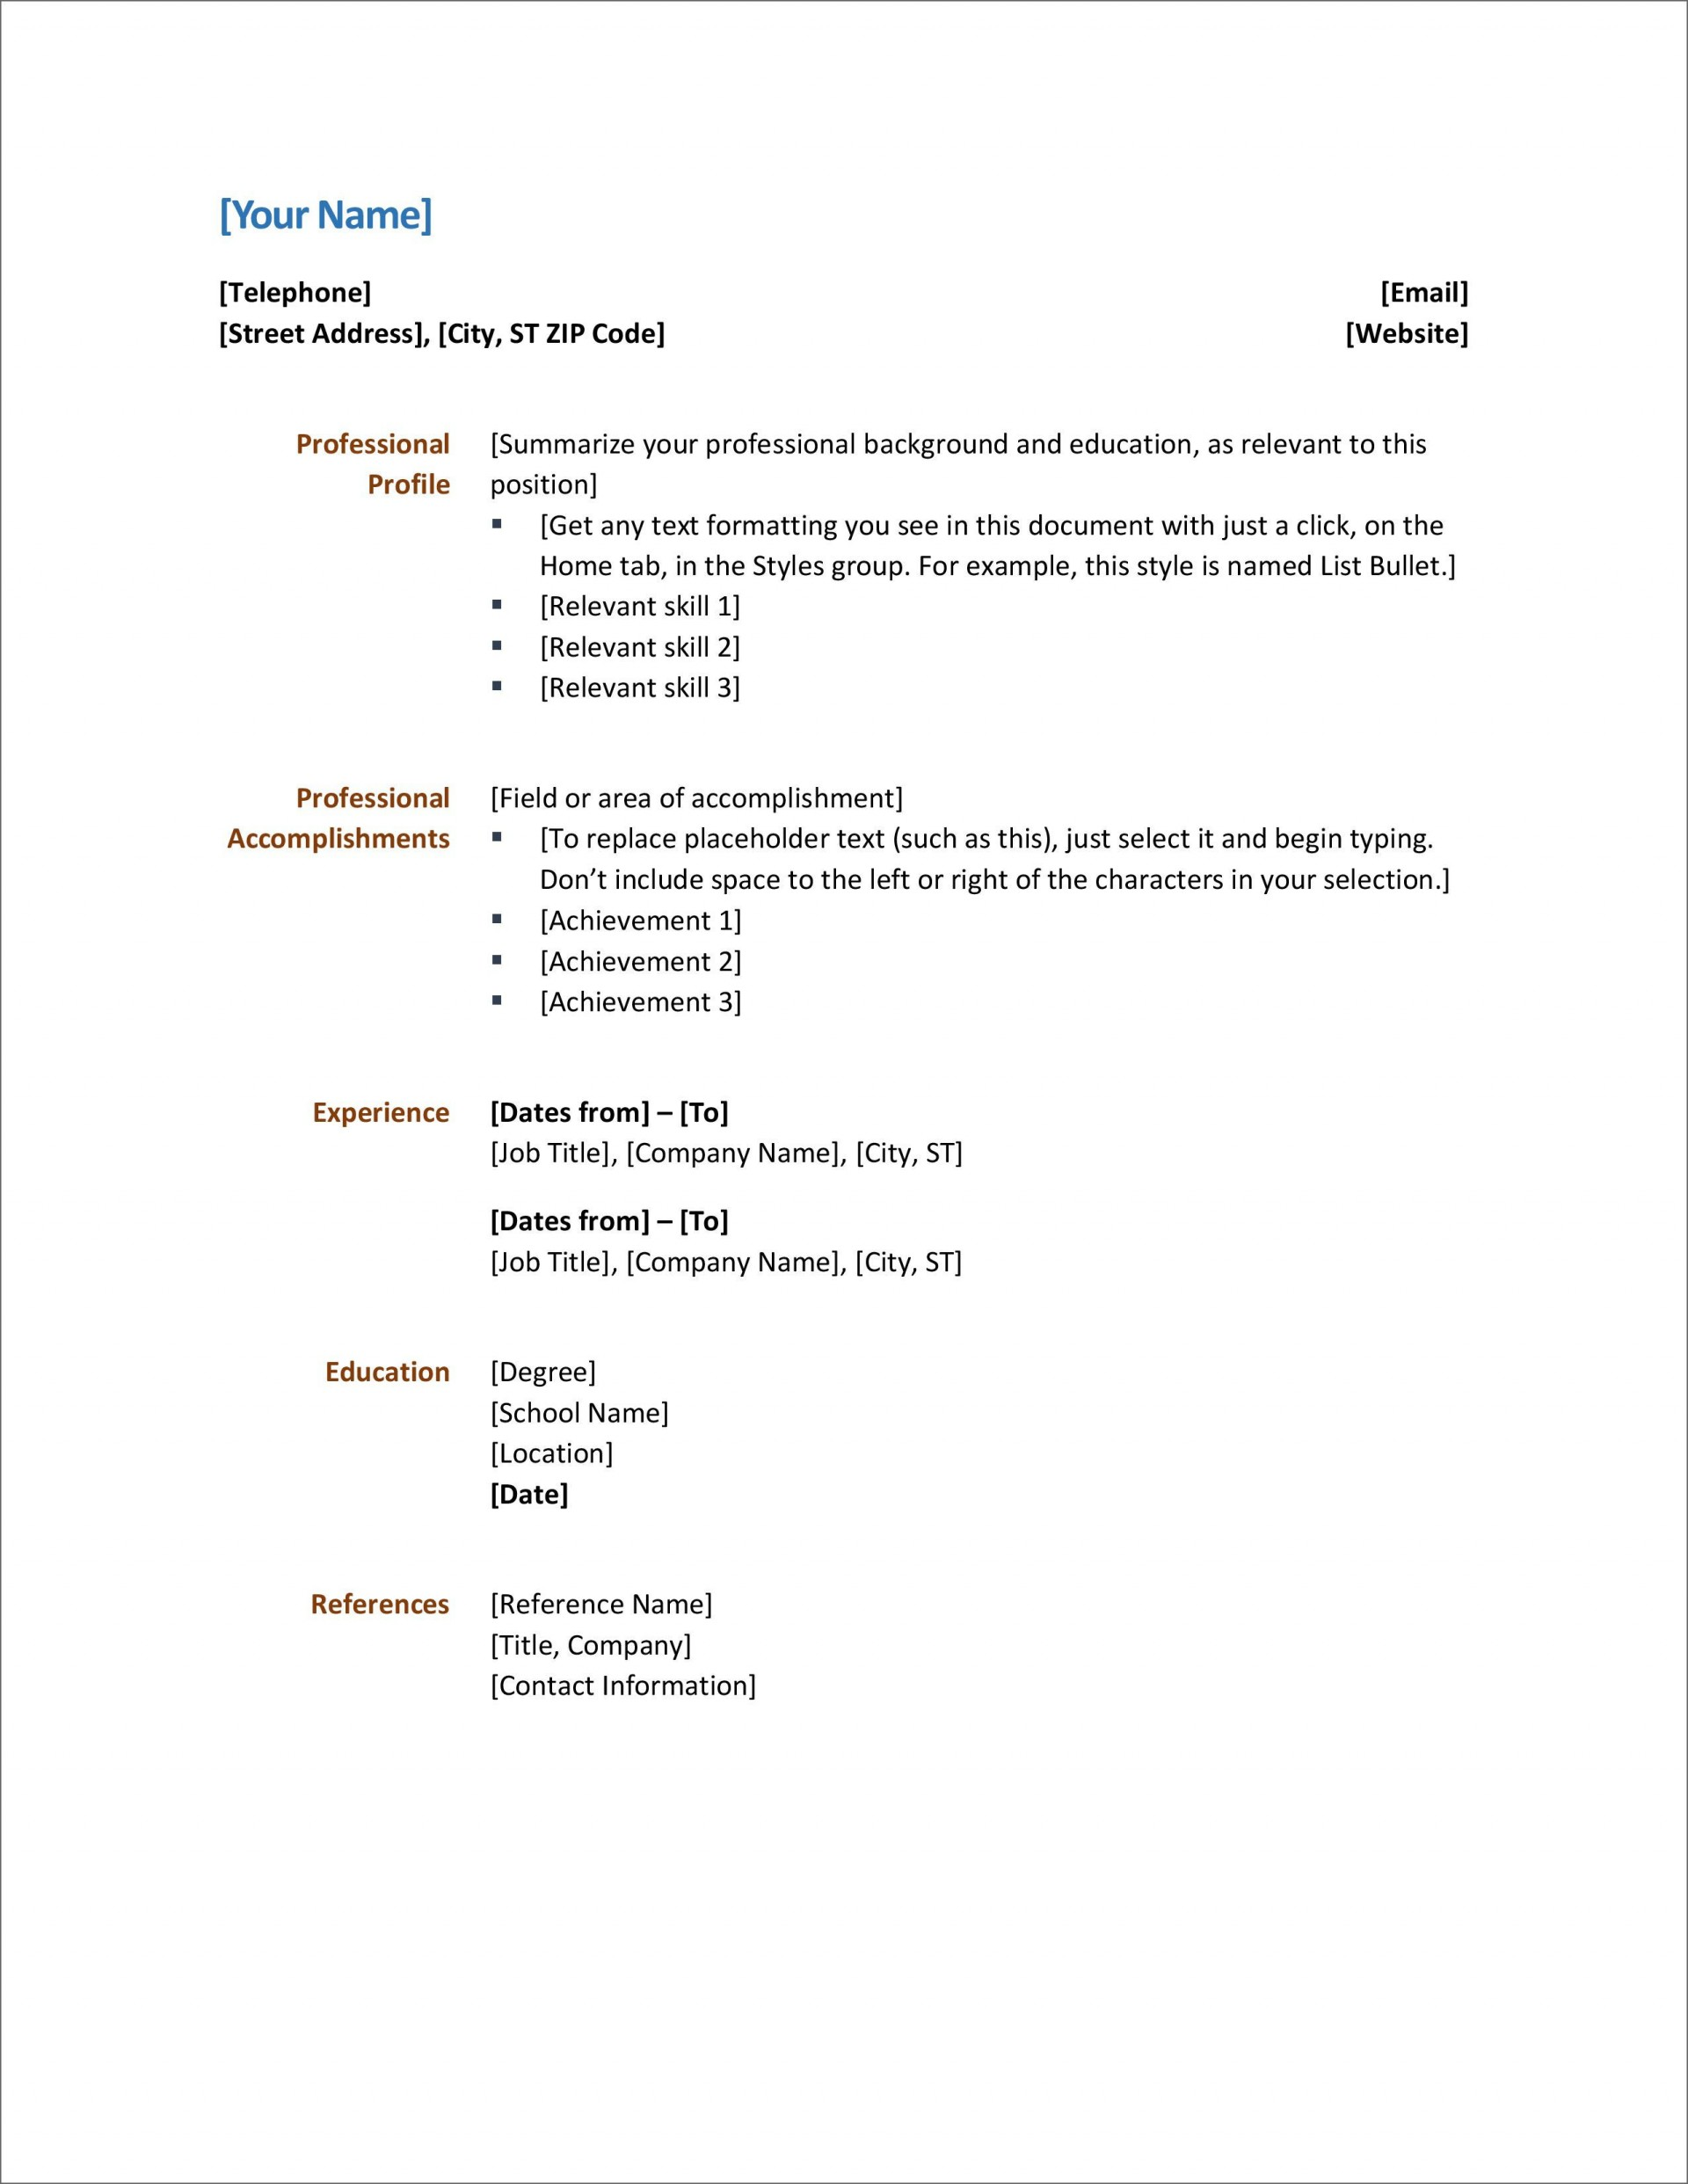 007 Phenomenal Resume Template Word 2007 Free Concept  Microsoft Office For M1920